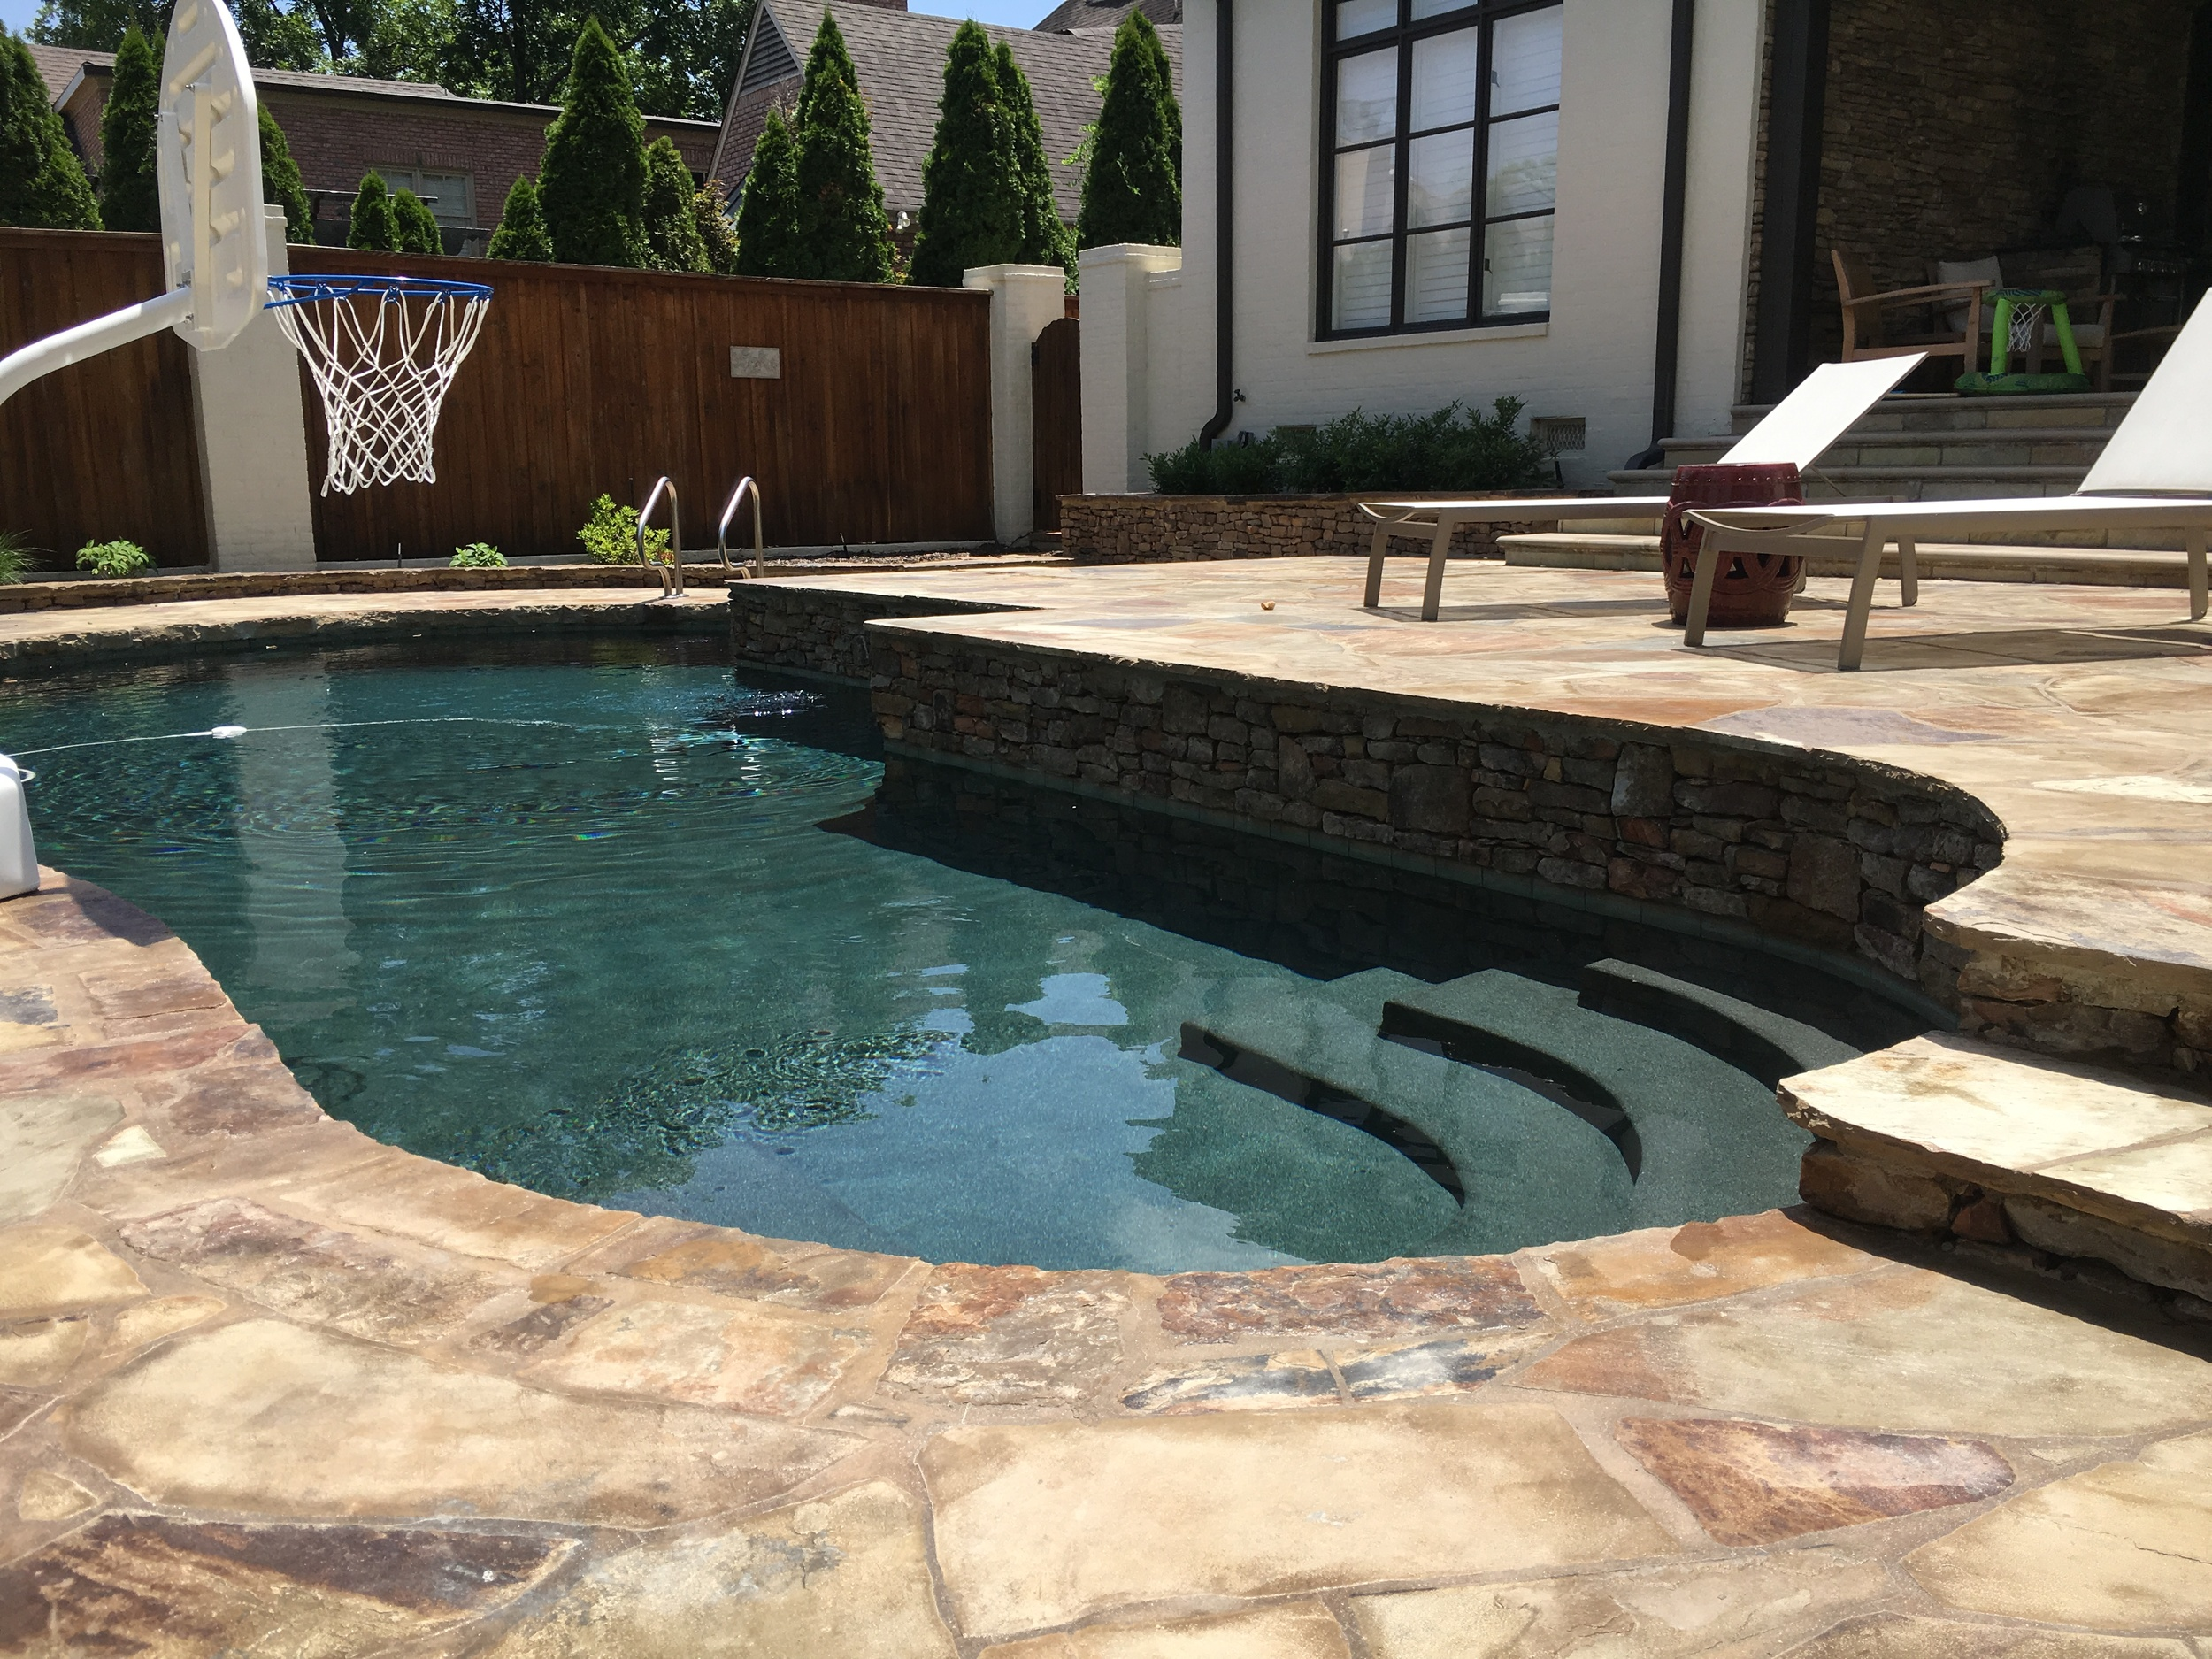 HARDSCAPING  Outdoors Unlimited is excited to fulfill your hardscaping needs. Our specialities include landscape borders and stonework.